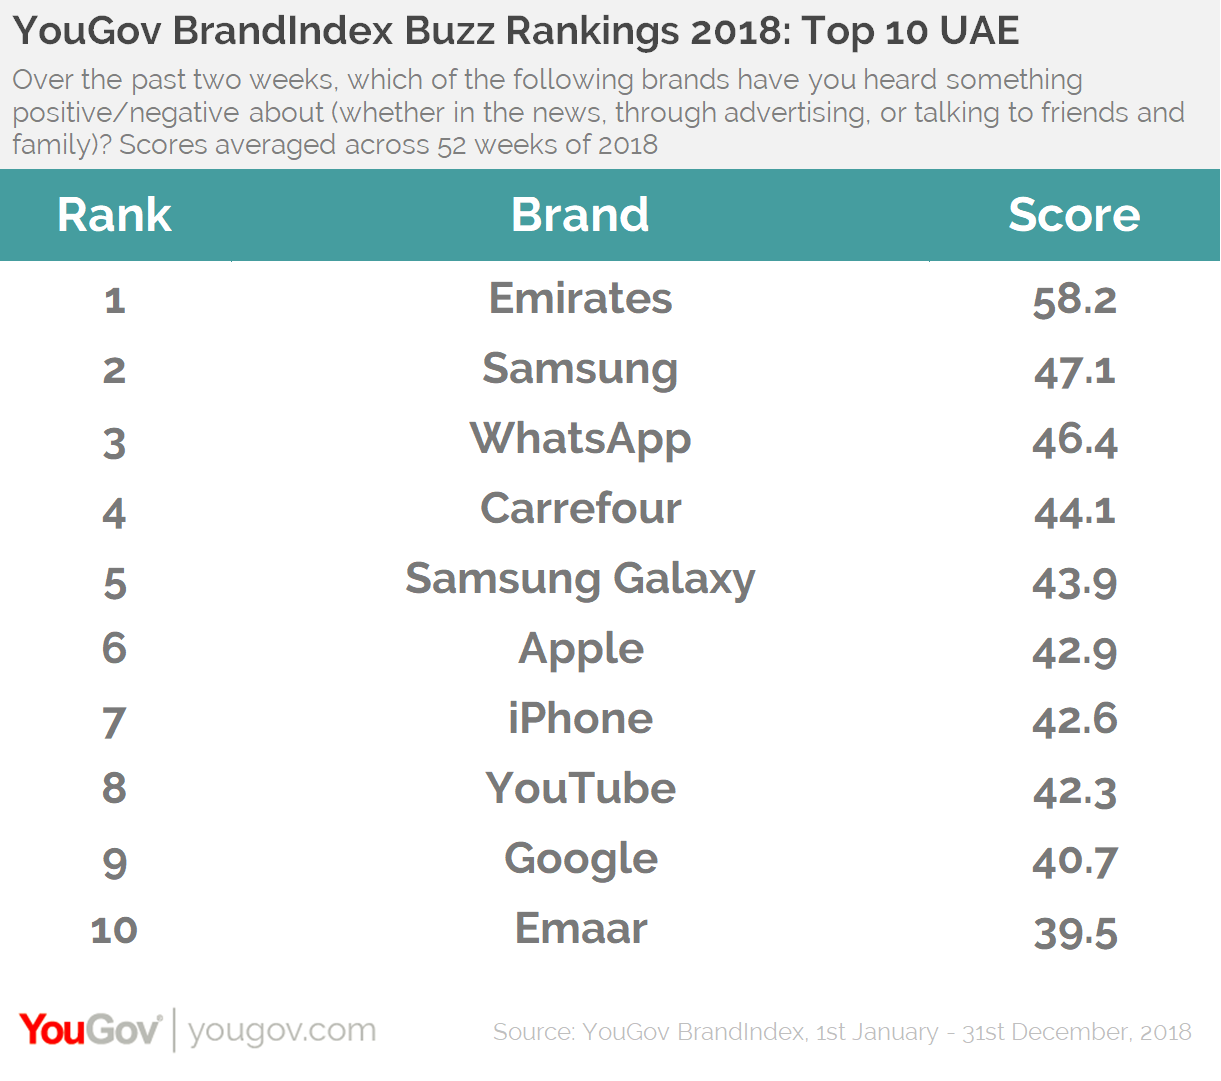 YouGov BrandIndex Buzz Rankings 2018- UAE Top 10